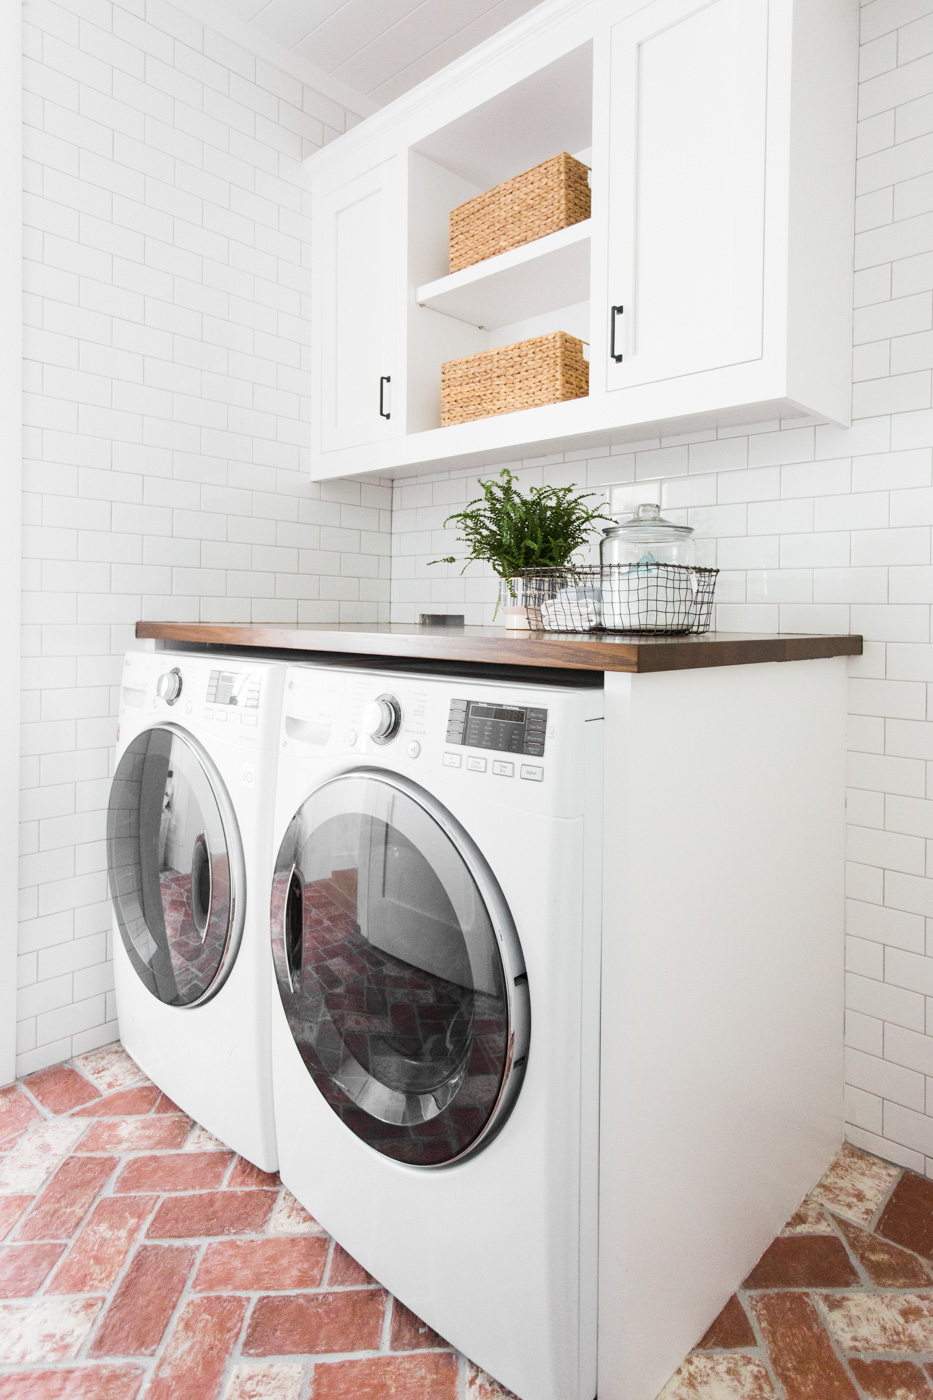 A white washer and dryer beneath counter